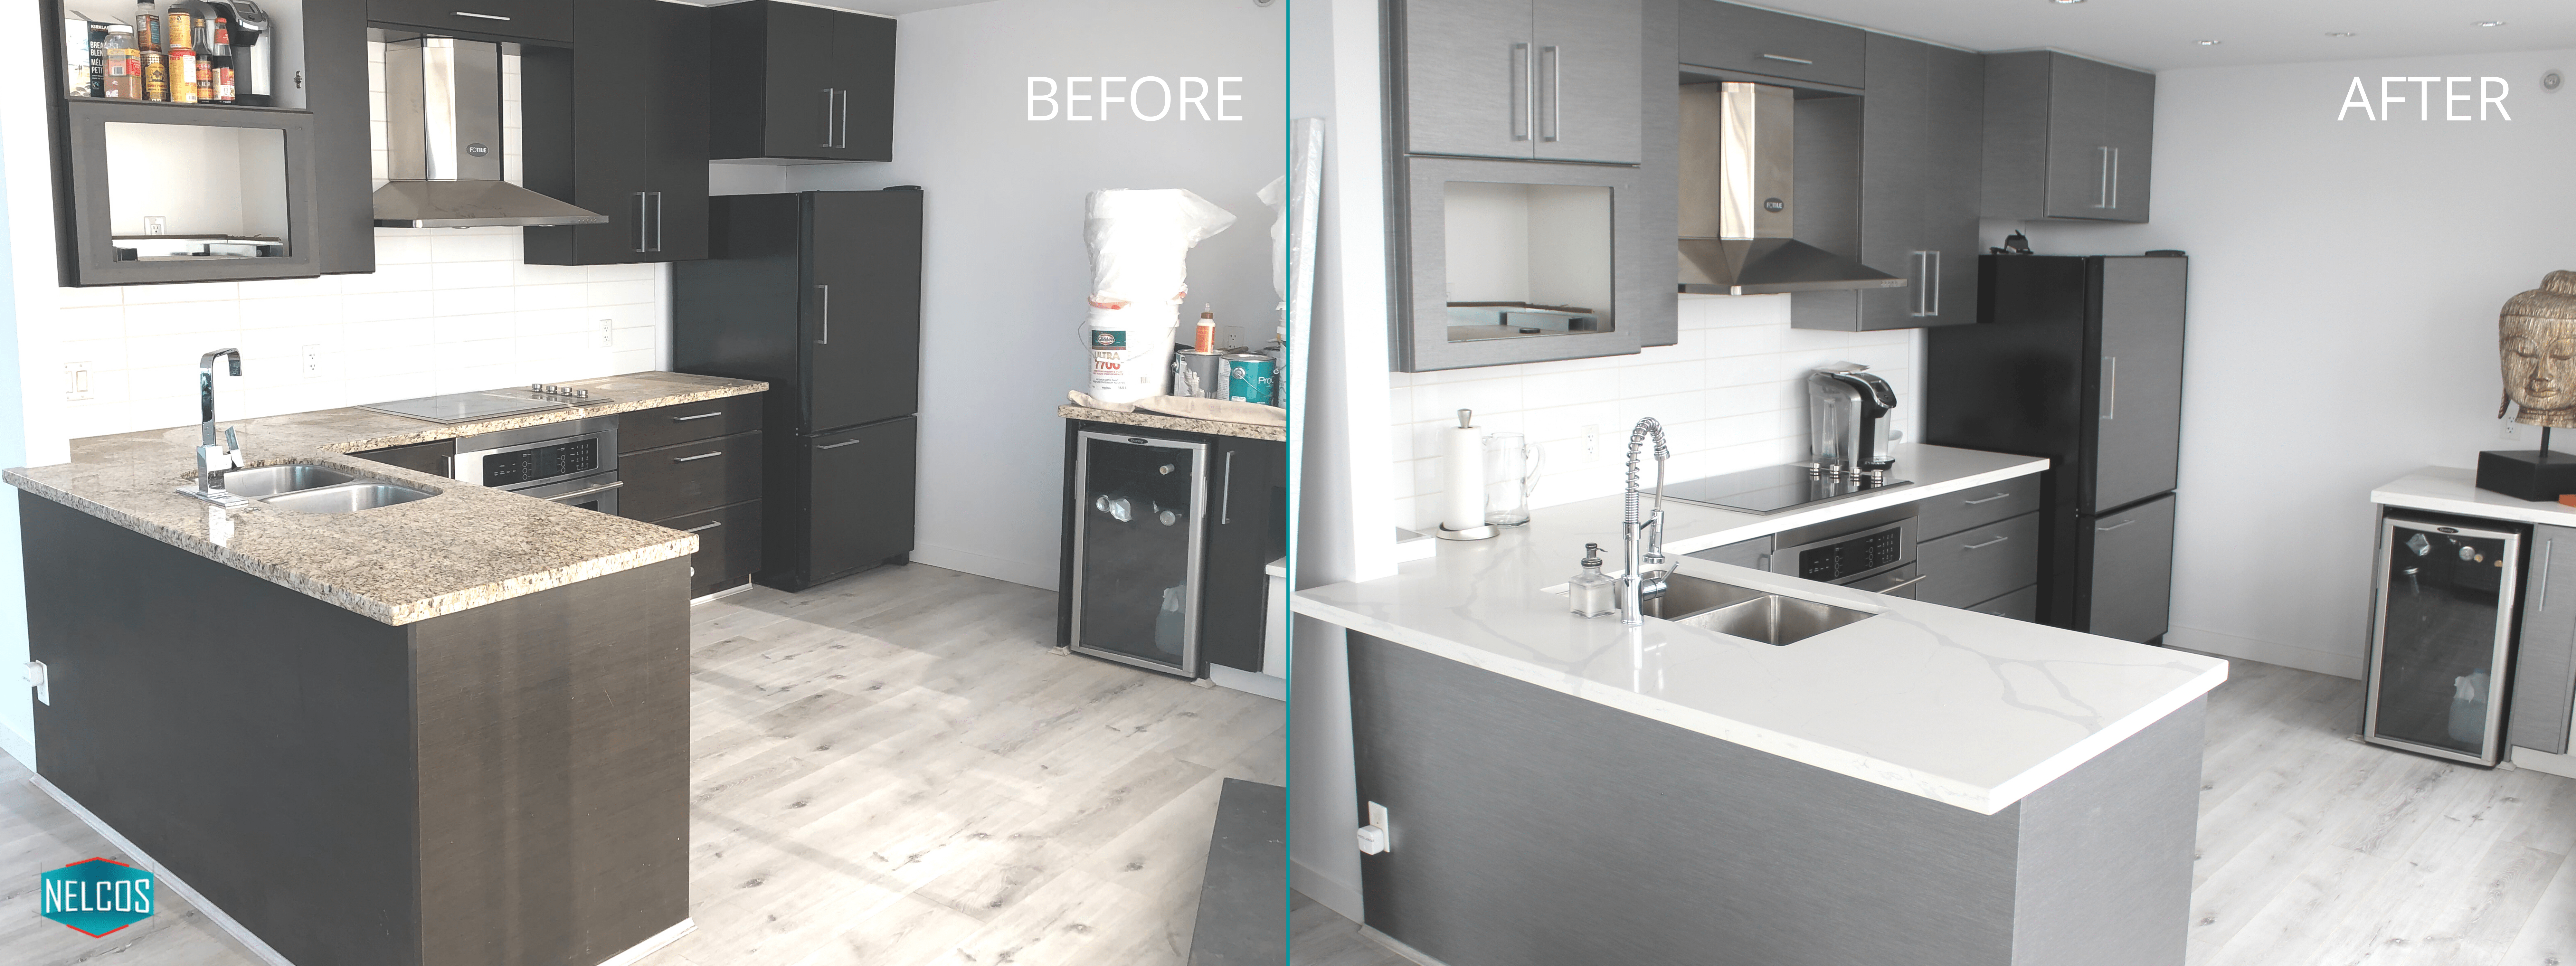 Kitchen Countertops and Cabinets Refinishing Before and After